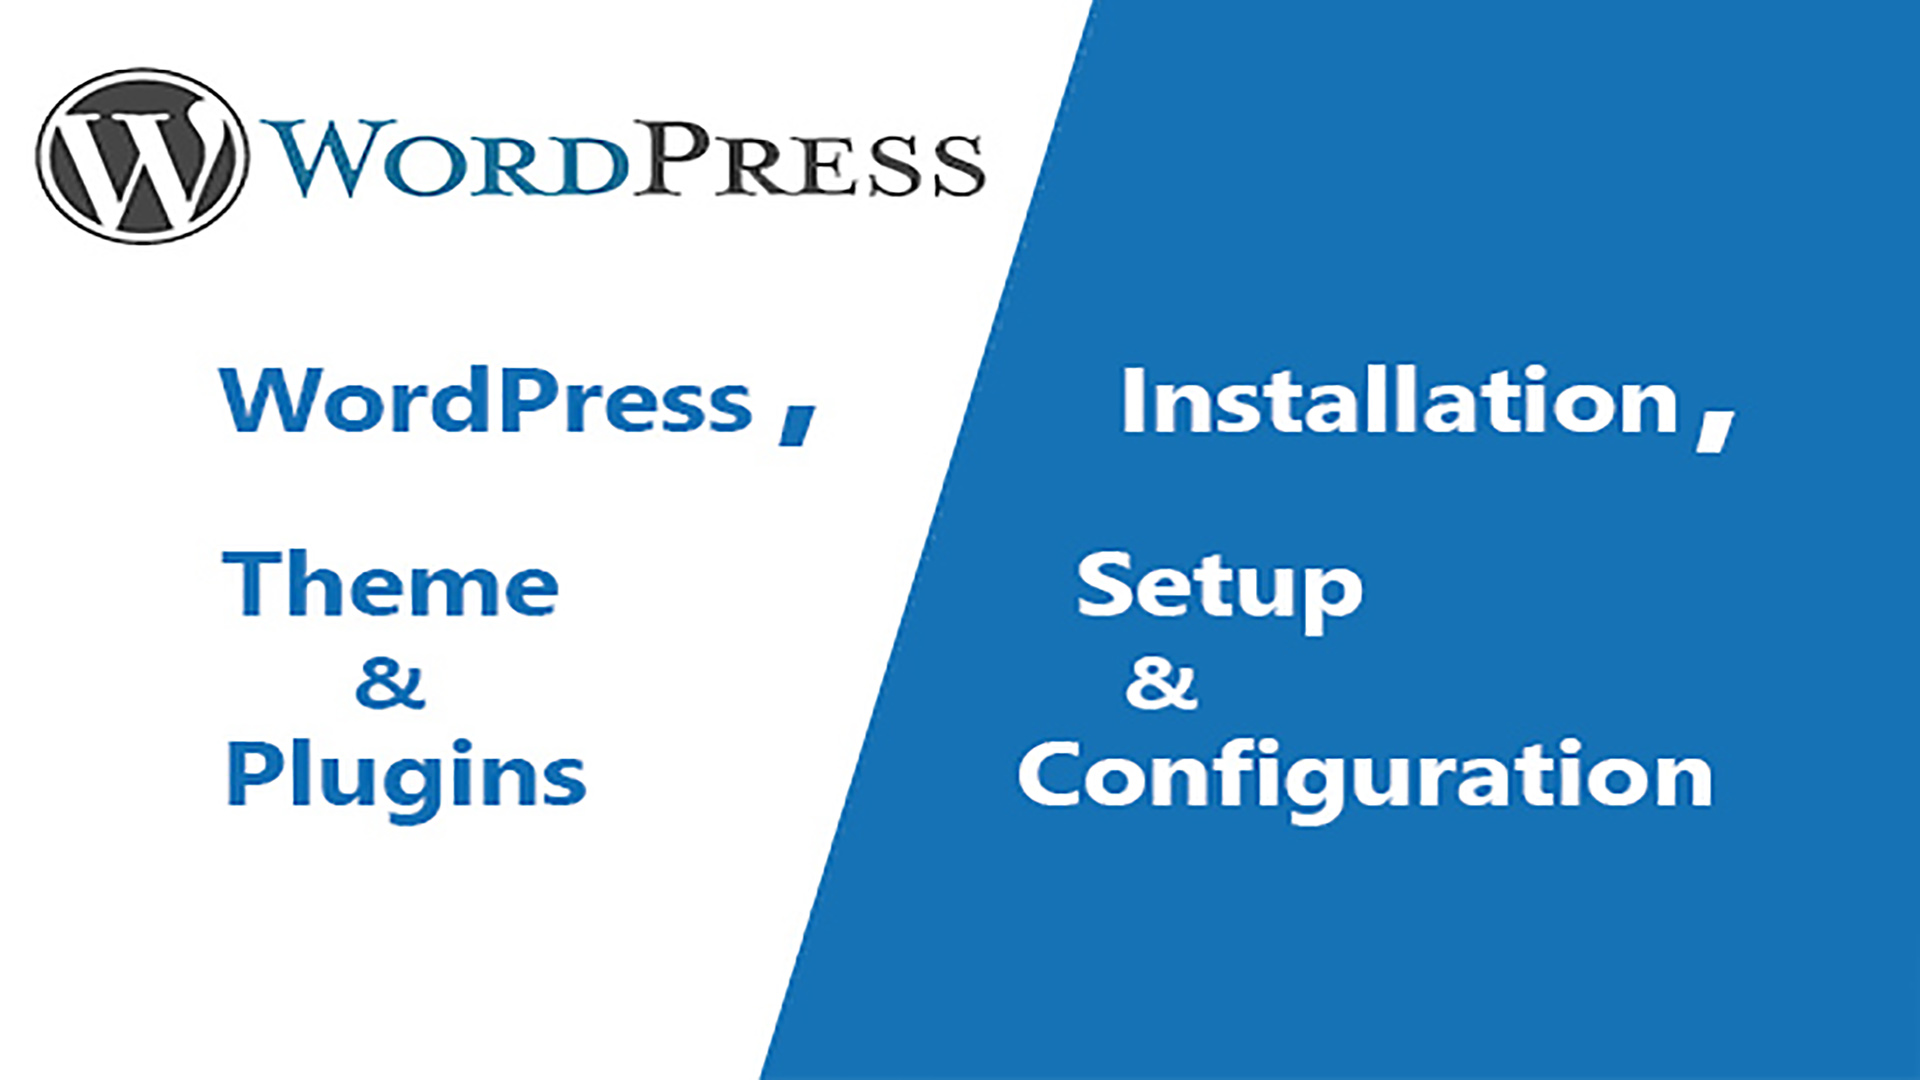 I can install and setup your wordpress website and theme